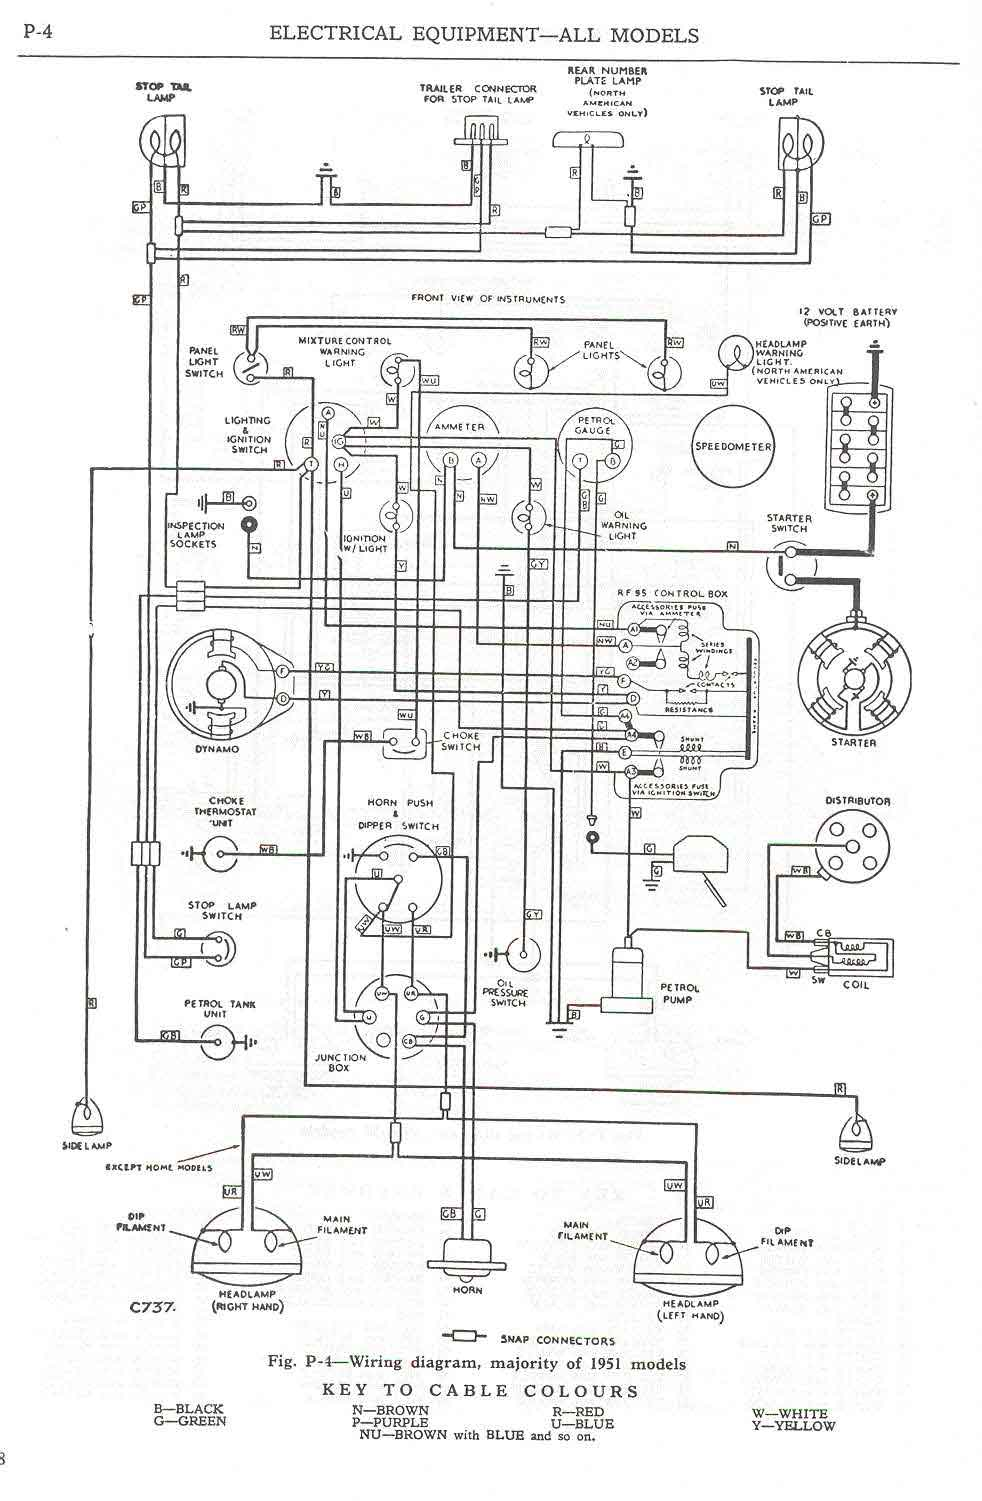 land rover series one wiring diagram 3 gtr capecoral western star wiring schematics land rover faq repair maintenance series electrical rh lrfaq org land rover series 2a wiring diagram land rover series 1 wiring diagram